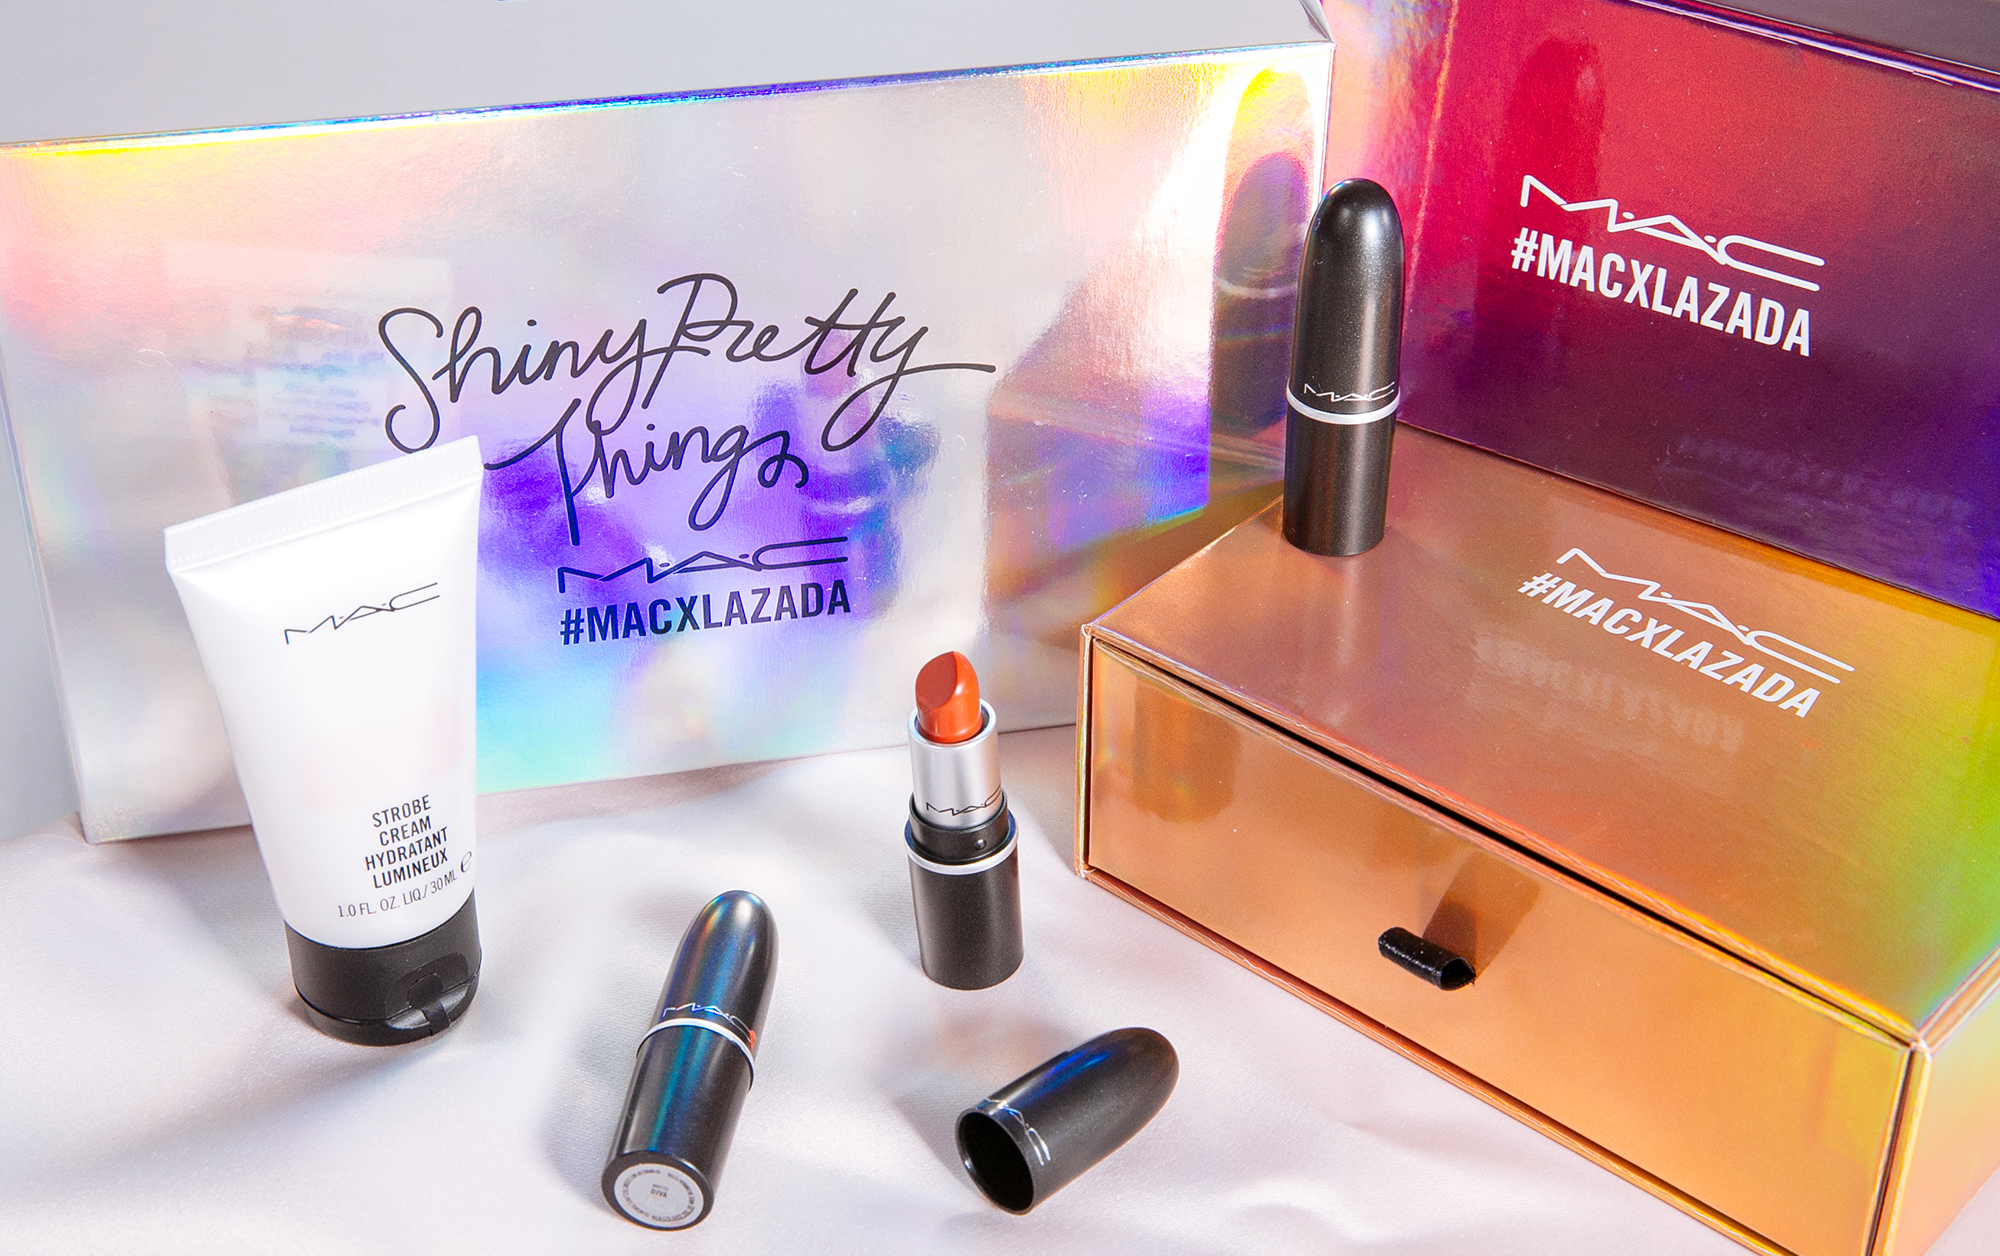 4 Exclusive Beauty Deals On Lazada You Shouldn't Miss Out On This 11.11